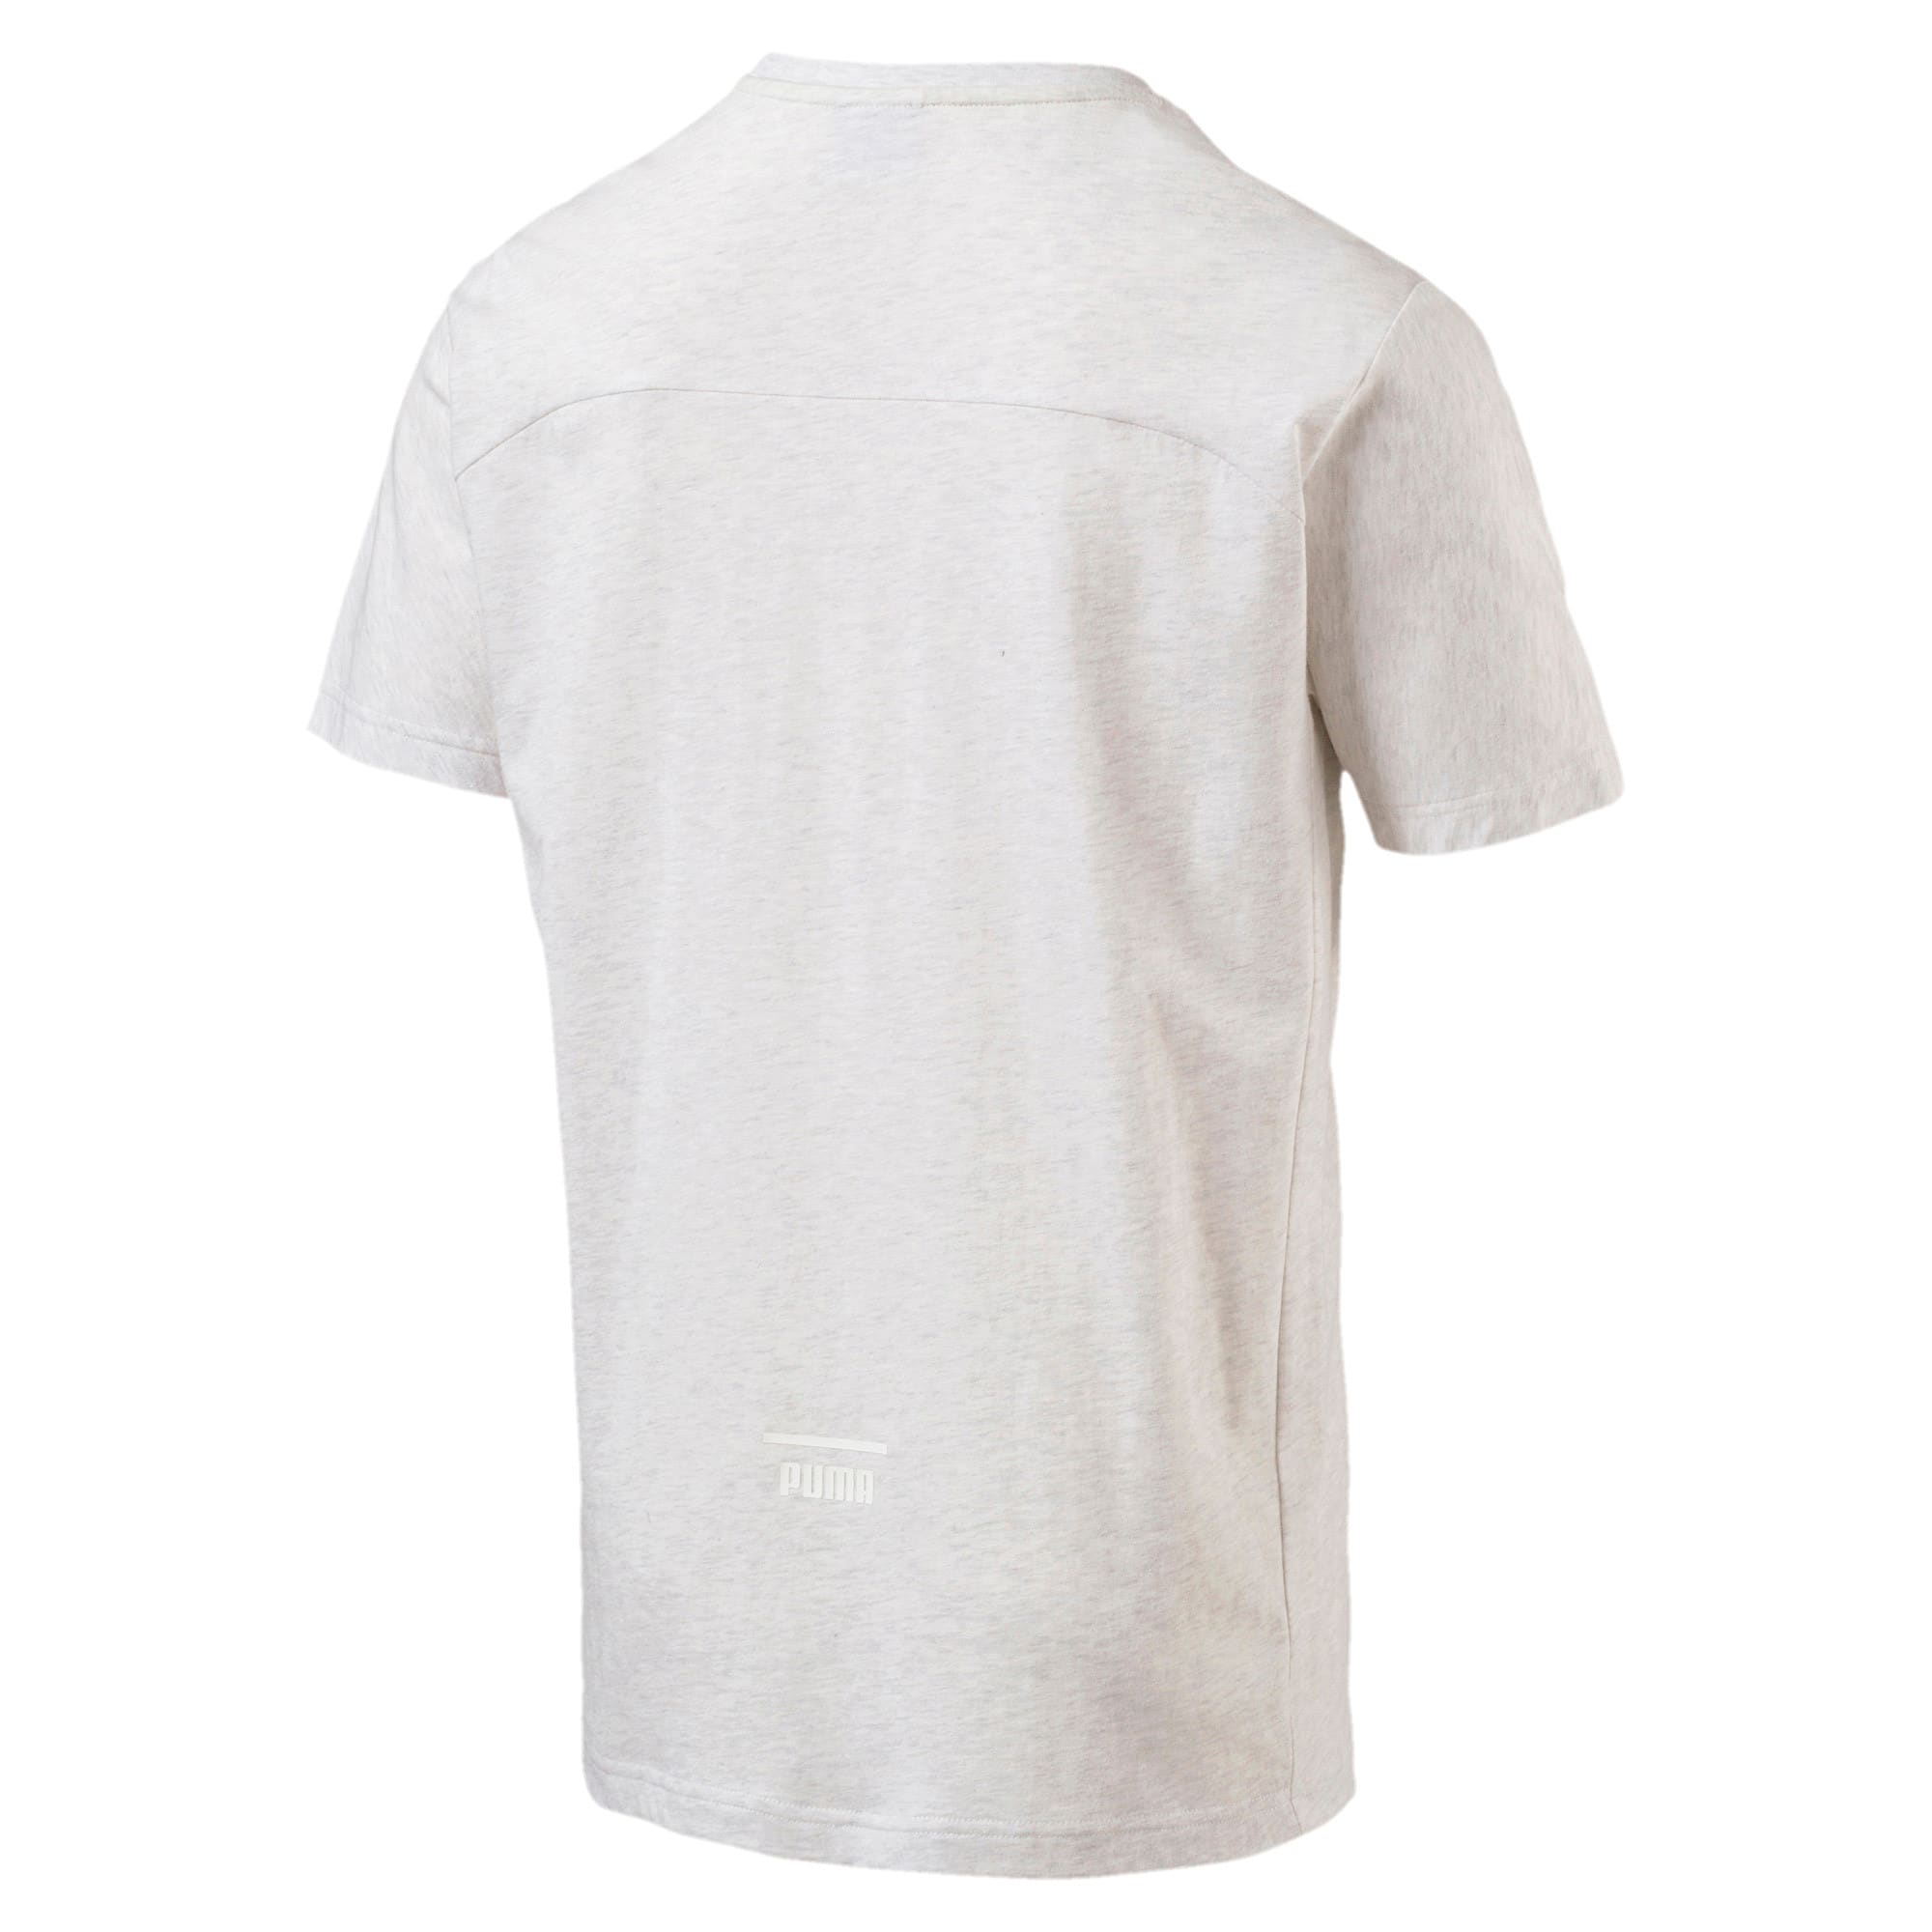 Thumbnail 2 of Pace Primary Men's T-Shirt, Puma White-Ice heather, medium-IND